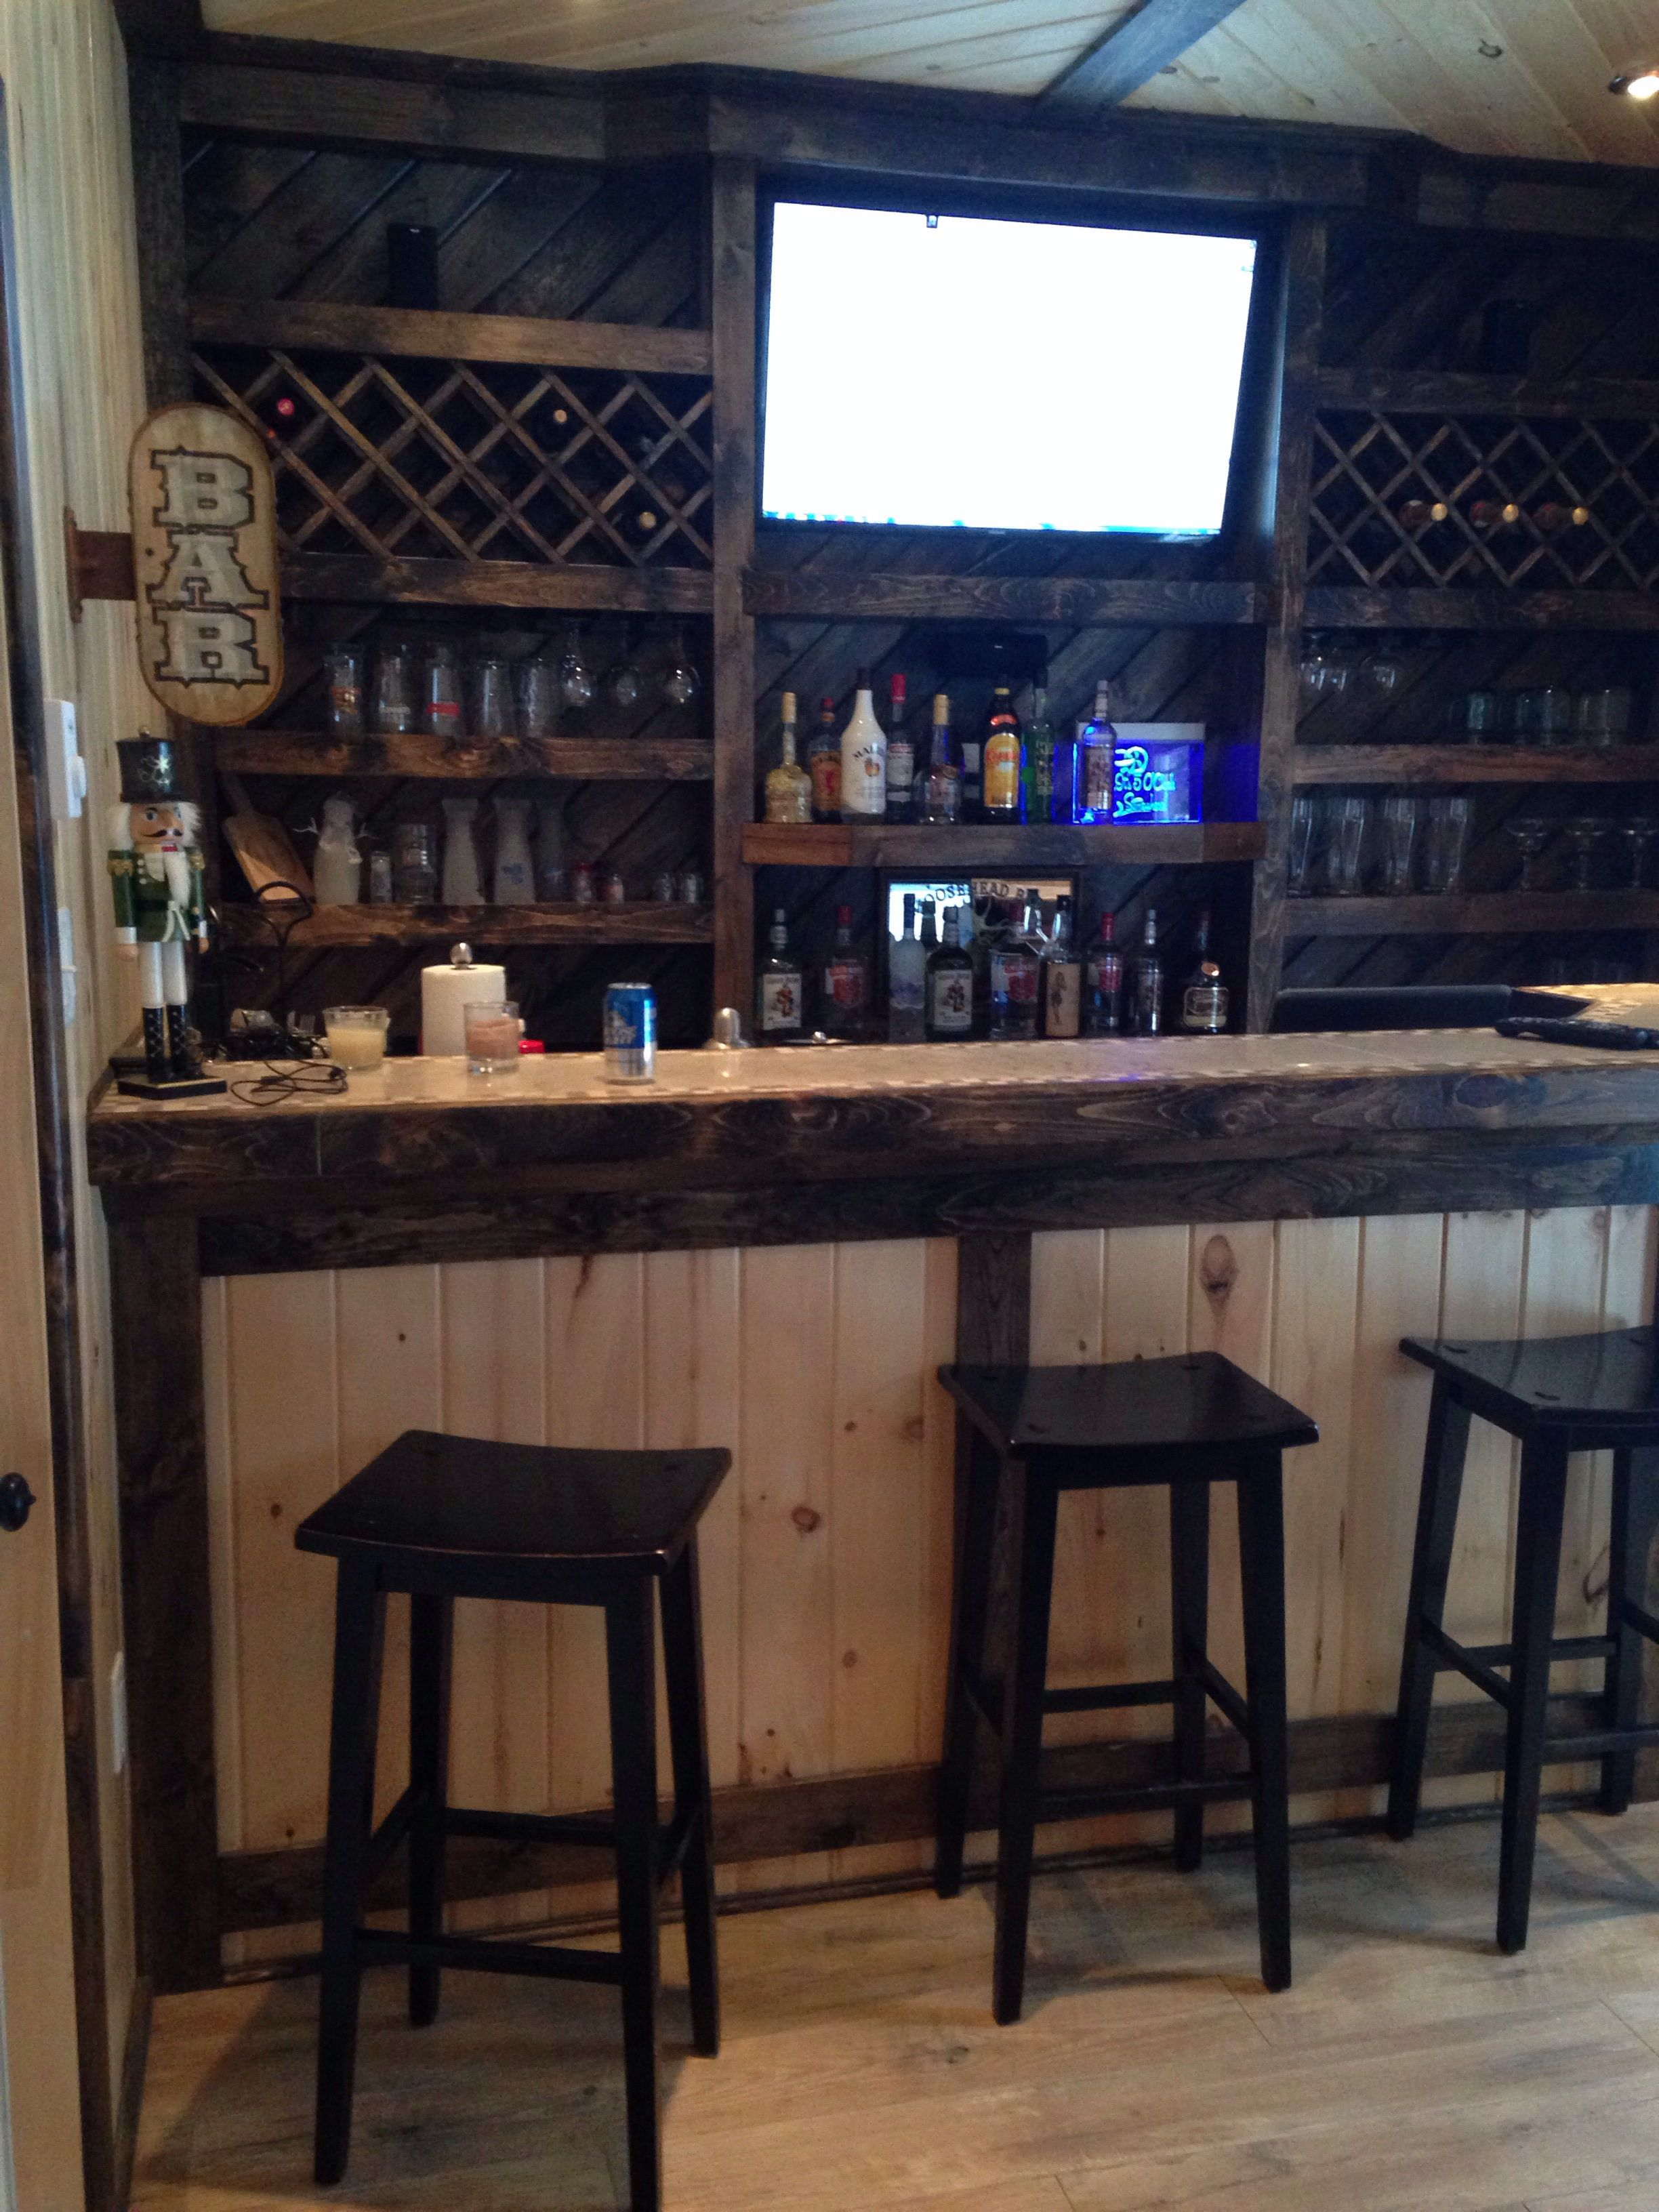 Man Cave Drinks Bar : Garage bar idea for the hubby s man cave like this but